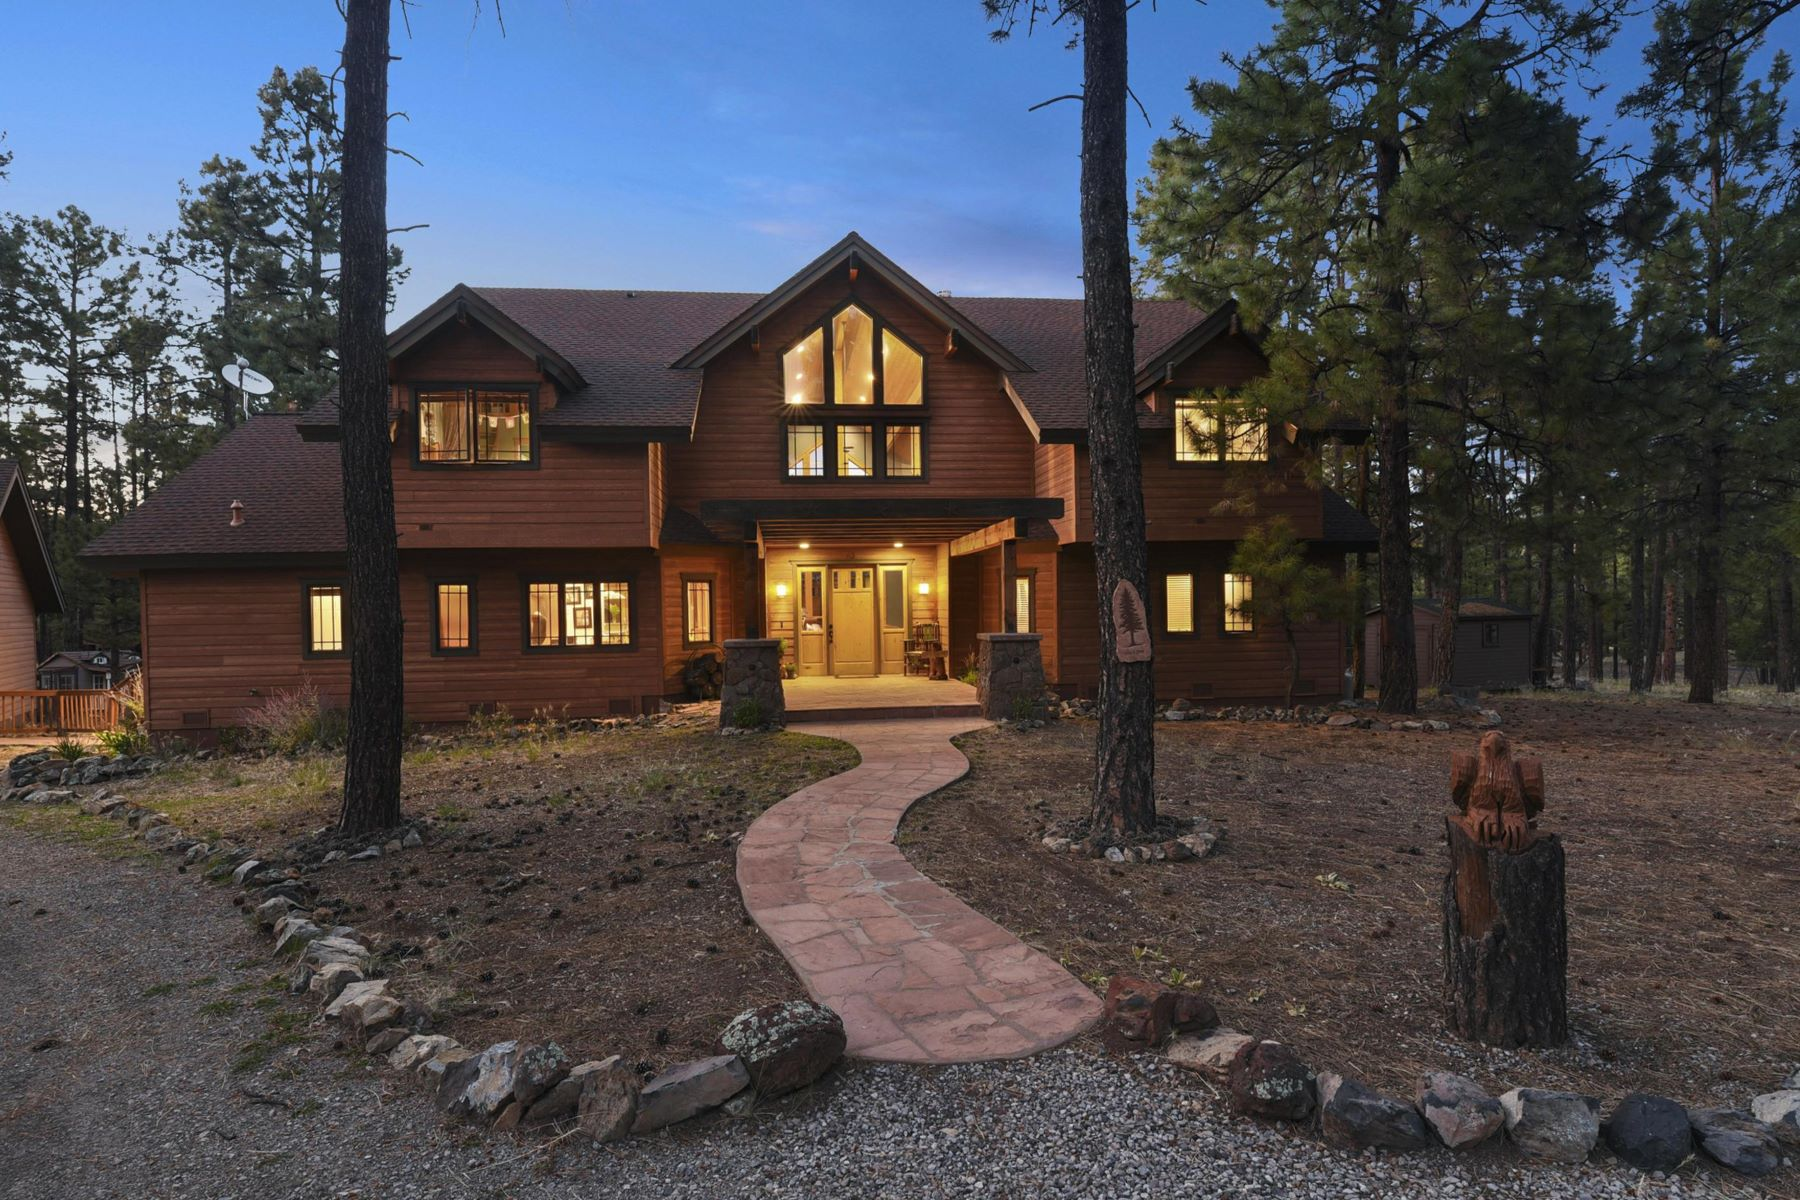 Single Family Homes for Active at Arrowhead Estates 2310 Blackhawk Ln Flagstaff, Arizona 86001 United States